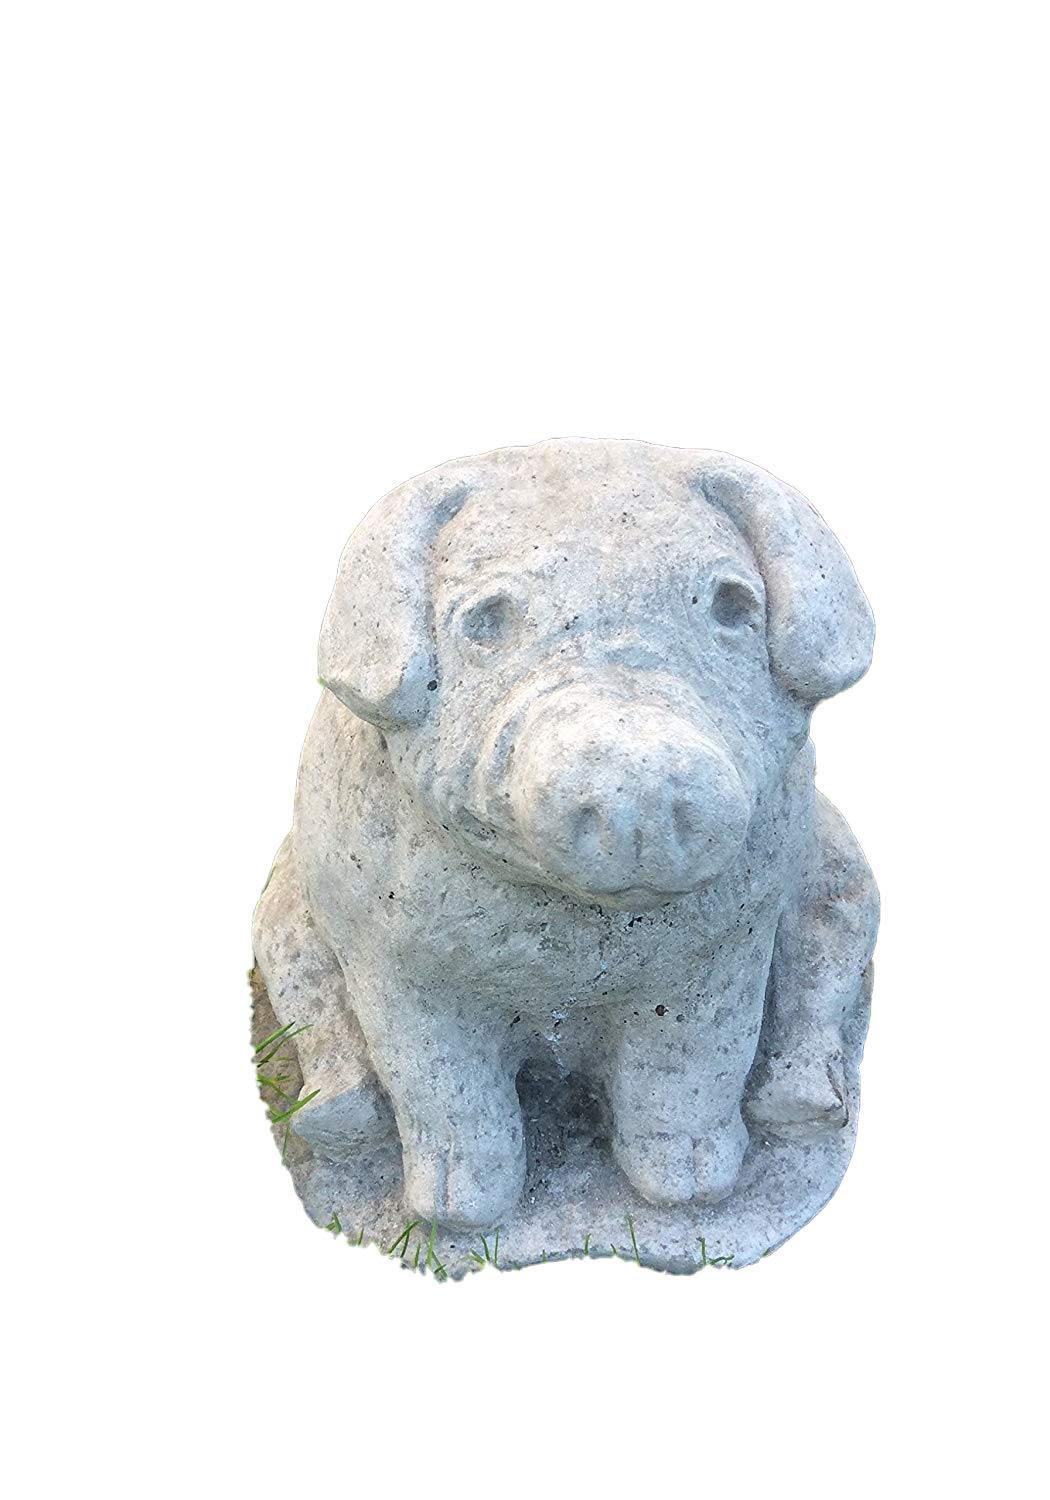 Piglets in Basket Garden Statue Made from Reconstituted Stone.